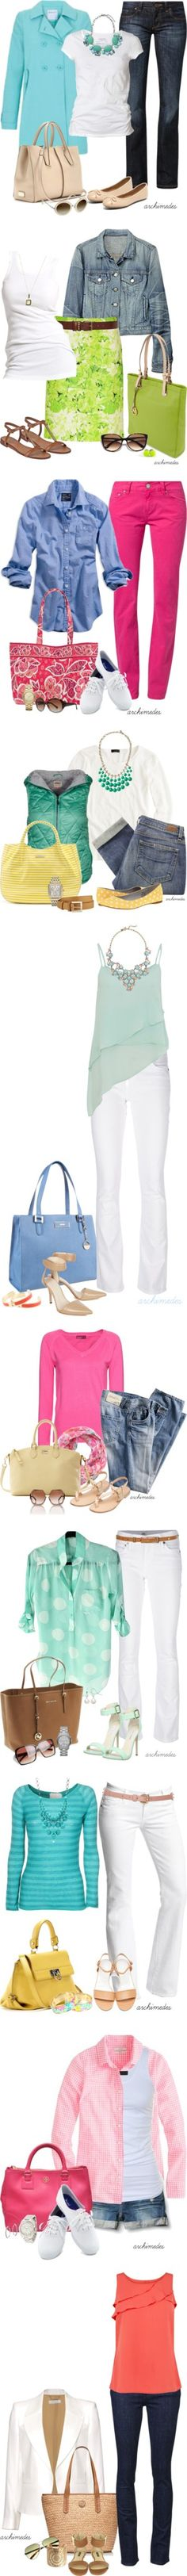 Cute spring combos